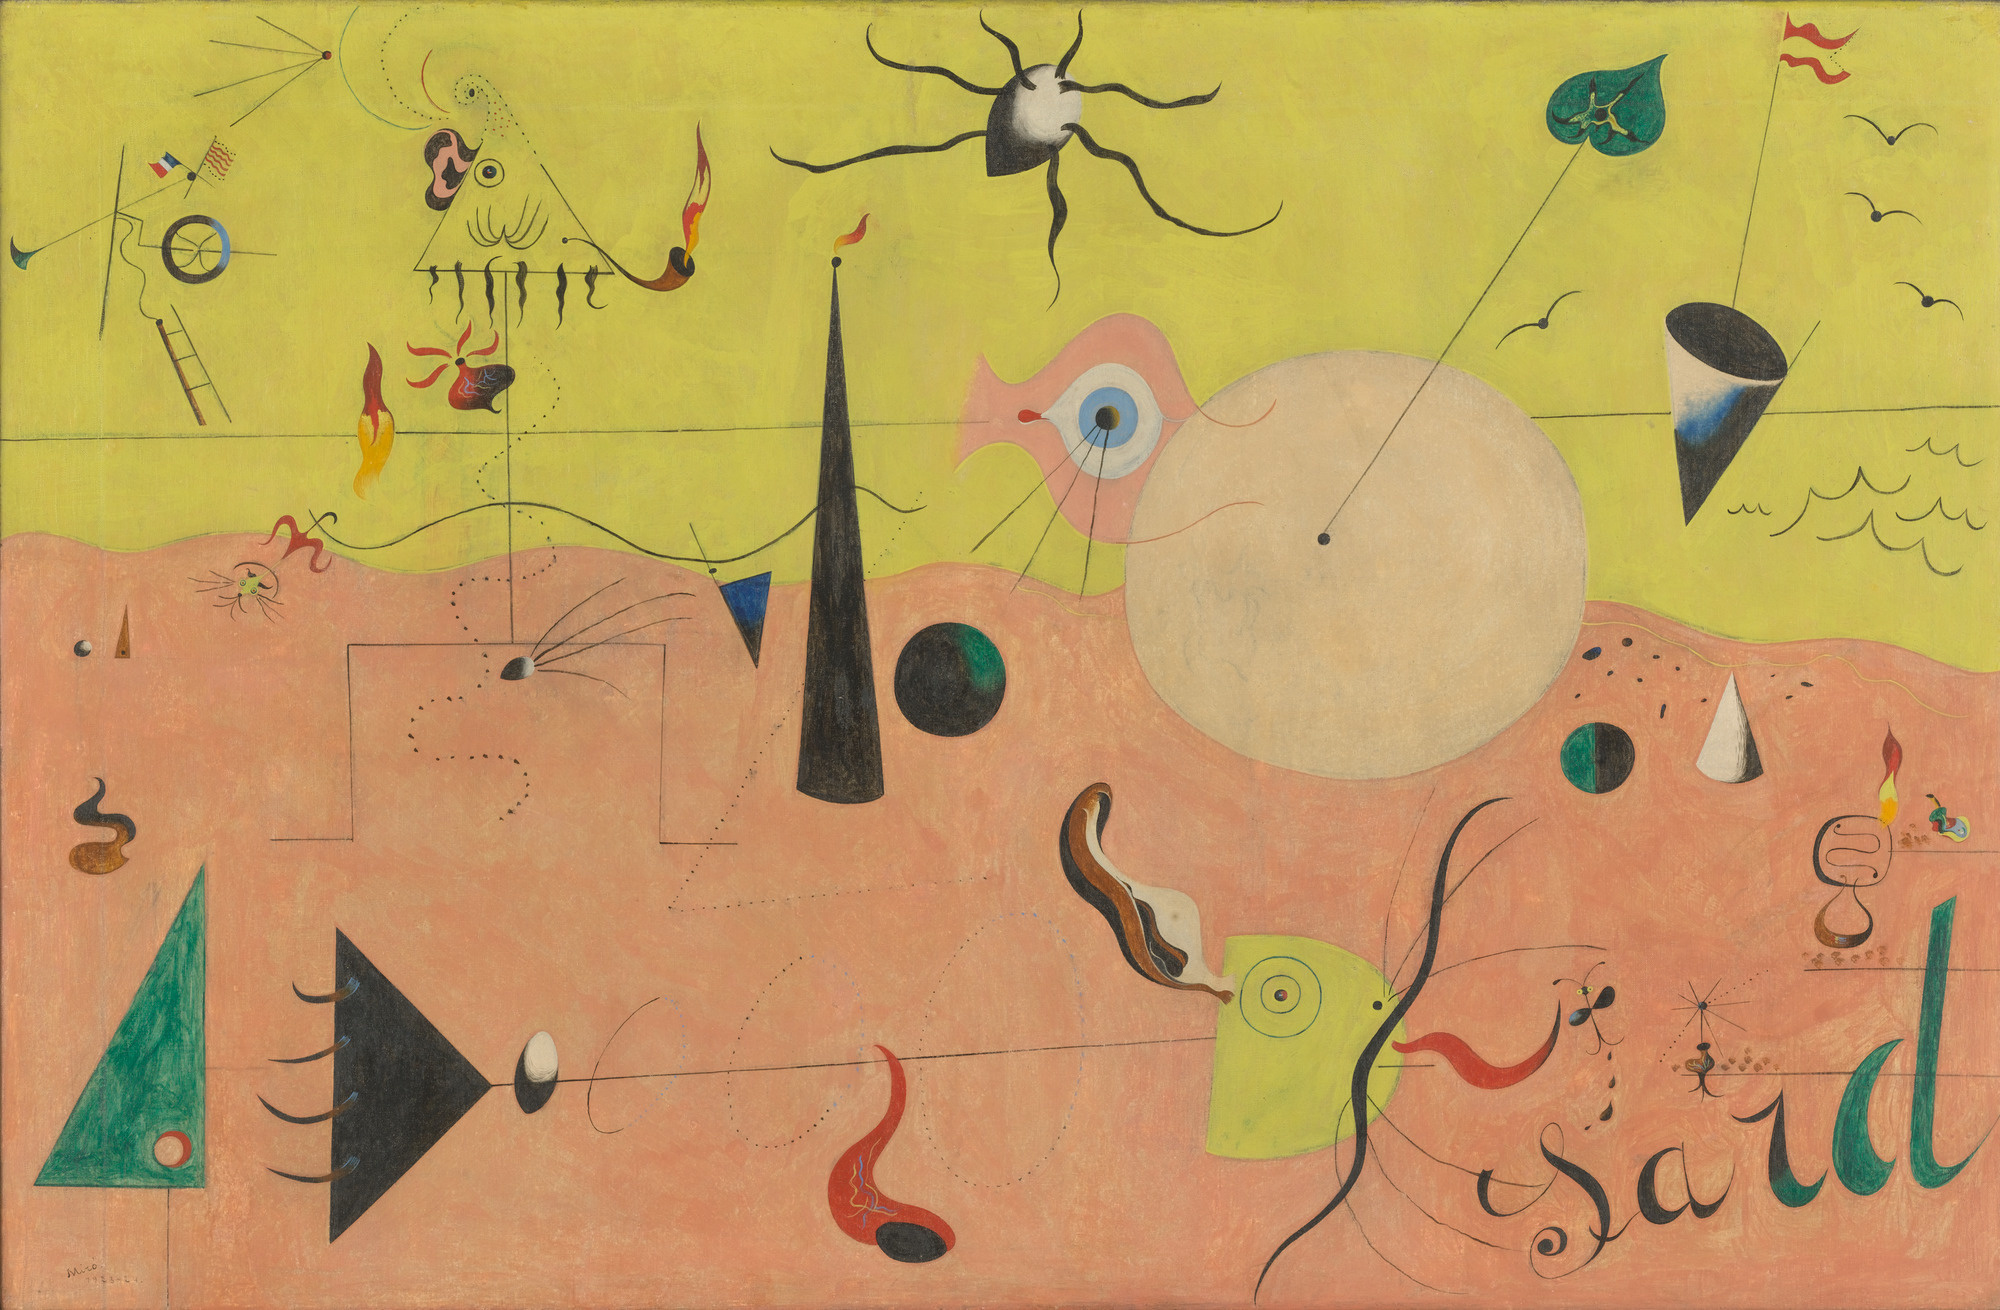 Joan-Miro--.-The-Hunter-Catalan-Landscape.-1923---24.-Oil-on-canvas-25-12-x-39-1222-64.8-x-100.3-cm.-Purchase.----2019-Successio---Miro--Artists-Rights-Society-ARS-New-YorkADAGP-Paris